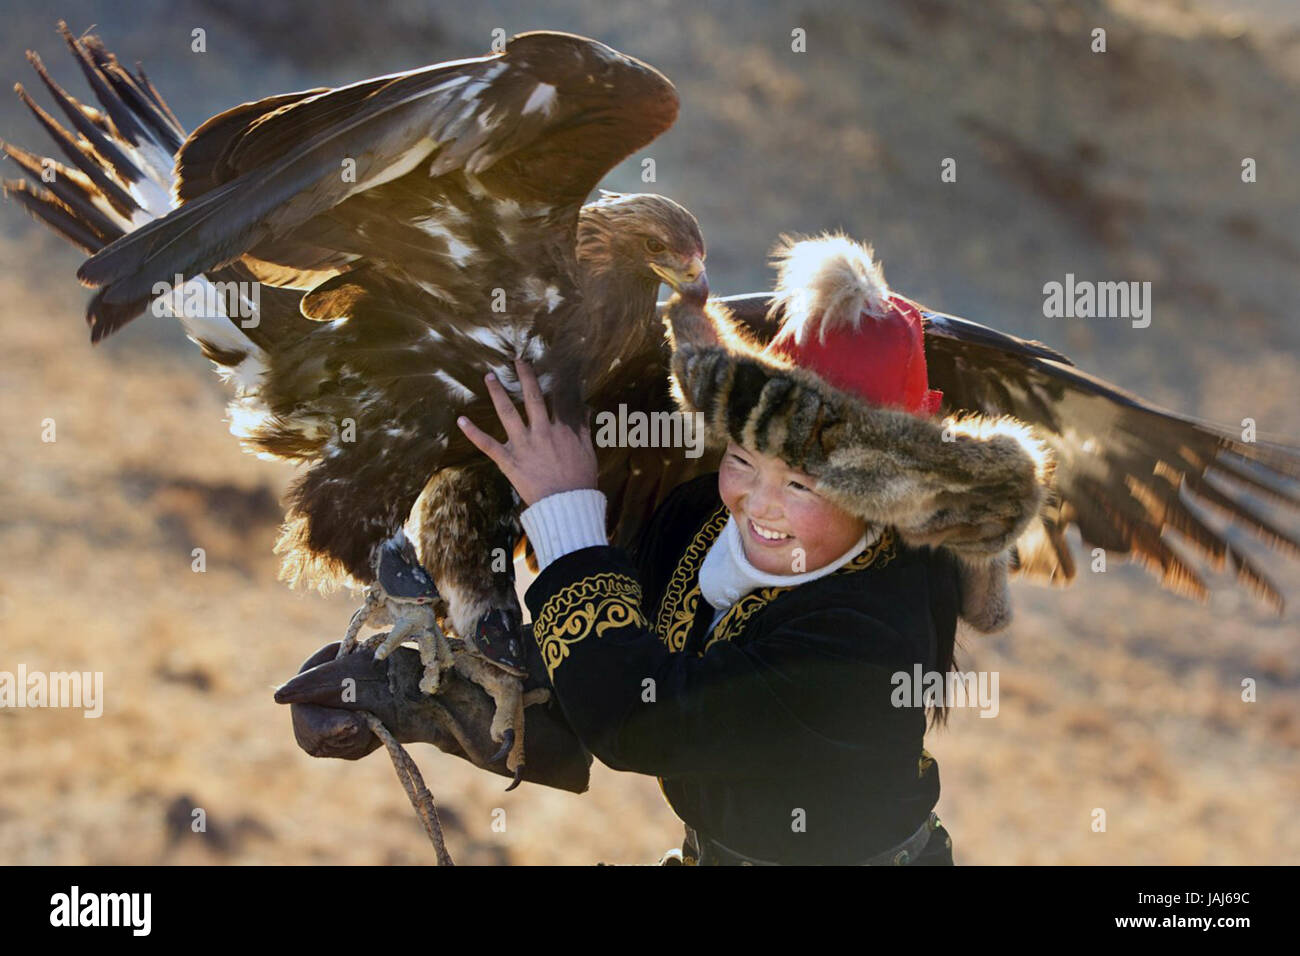 The Eagle Huntress is a 2016 Kazakh-language British-Mongolian-American documentary film directed by Otto Bell and - Stock Image